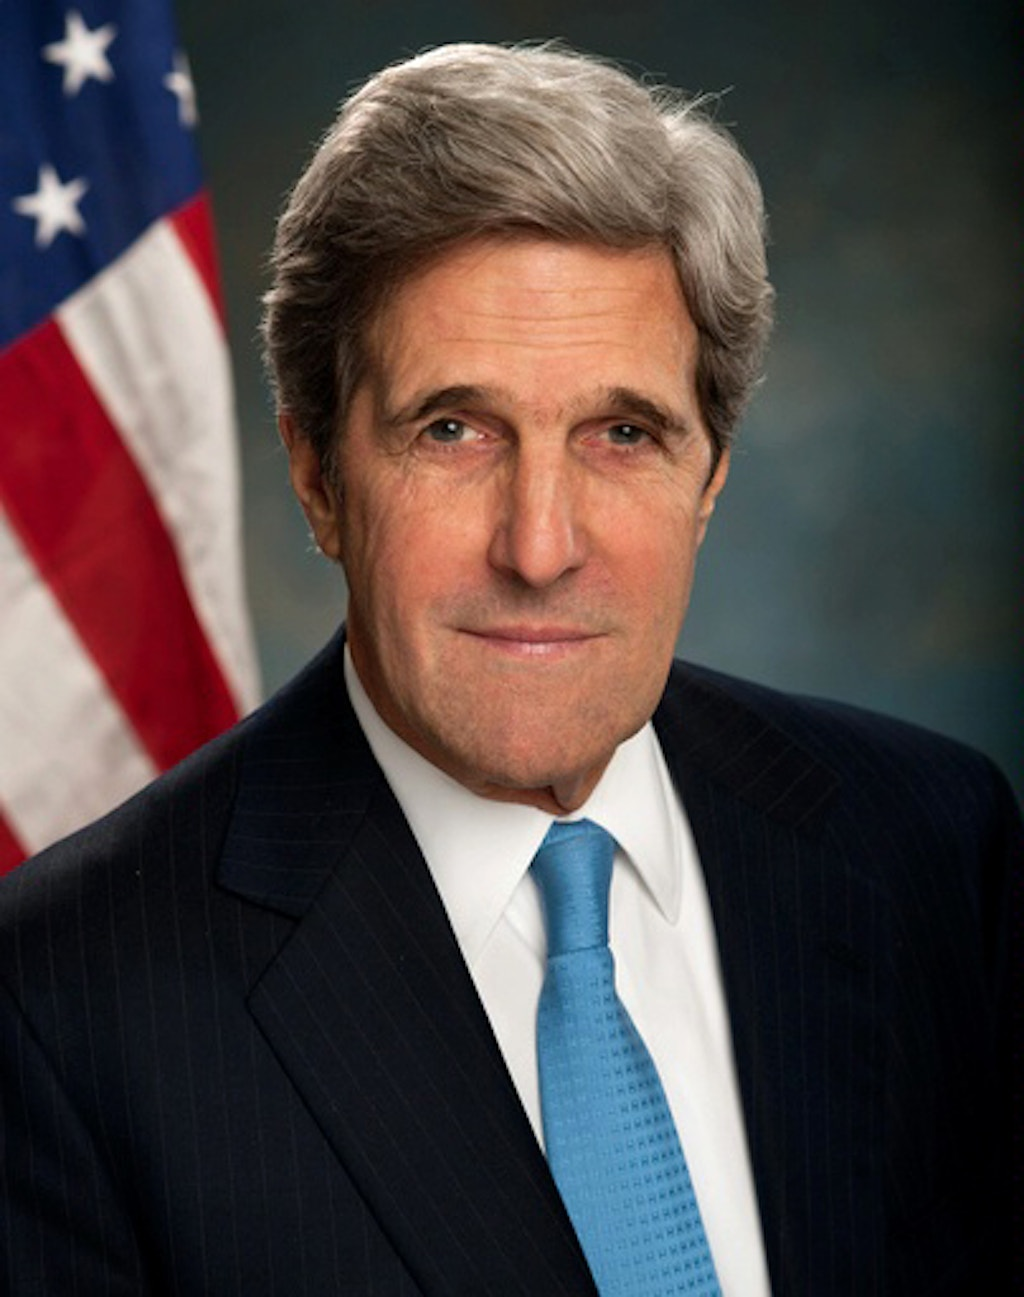 Secretary of State John Kerry Urges Texas to Reconsider Death Sentence of Mexican Citizen